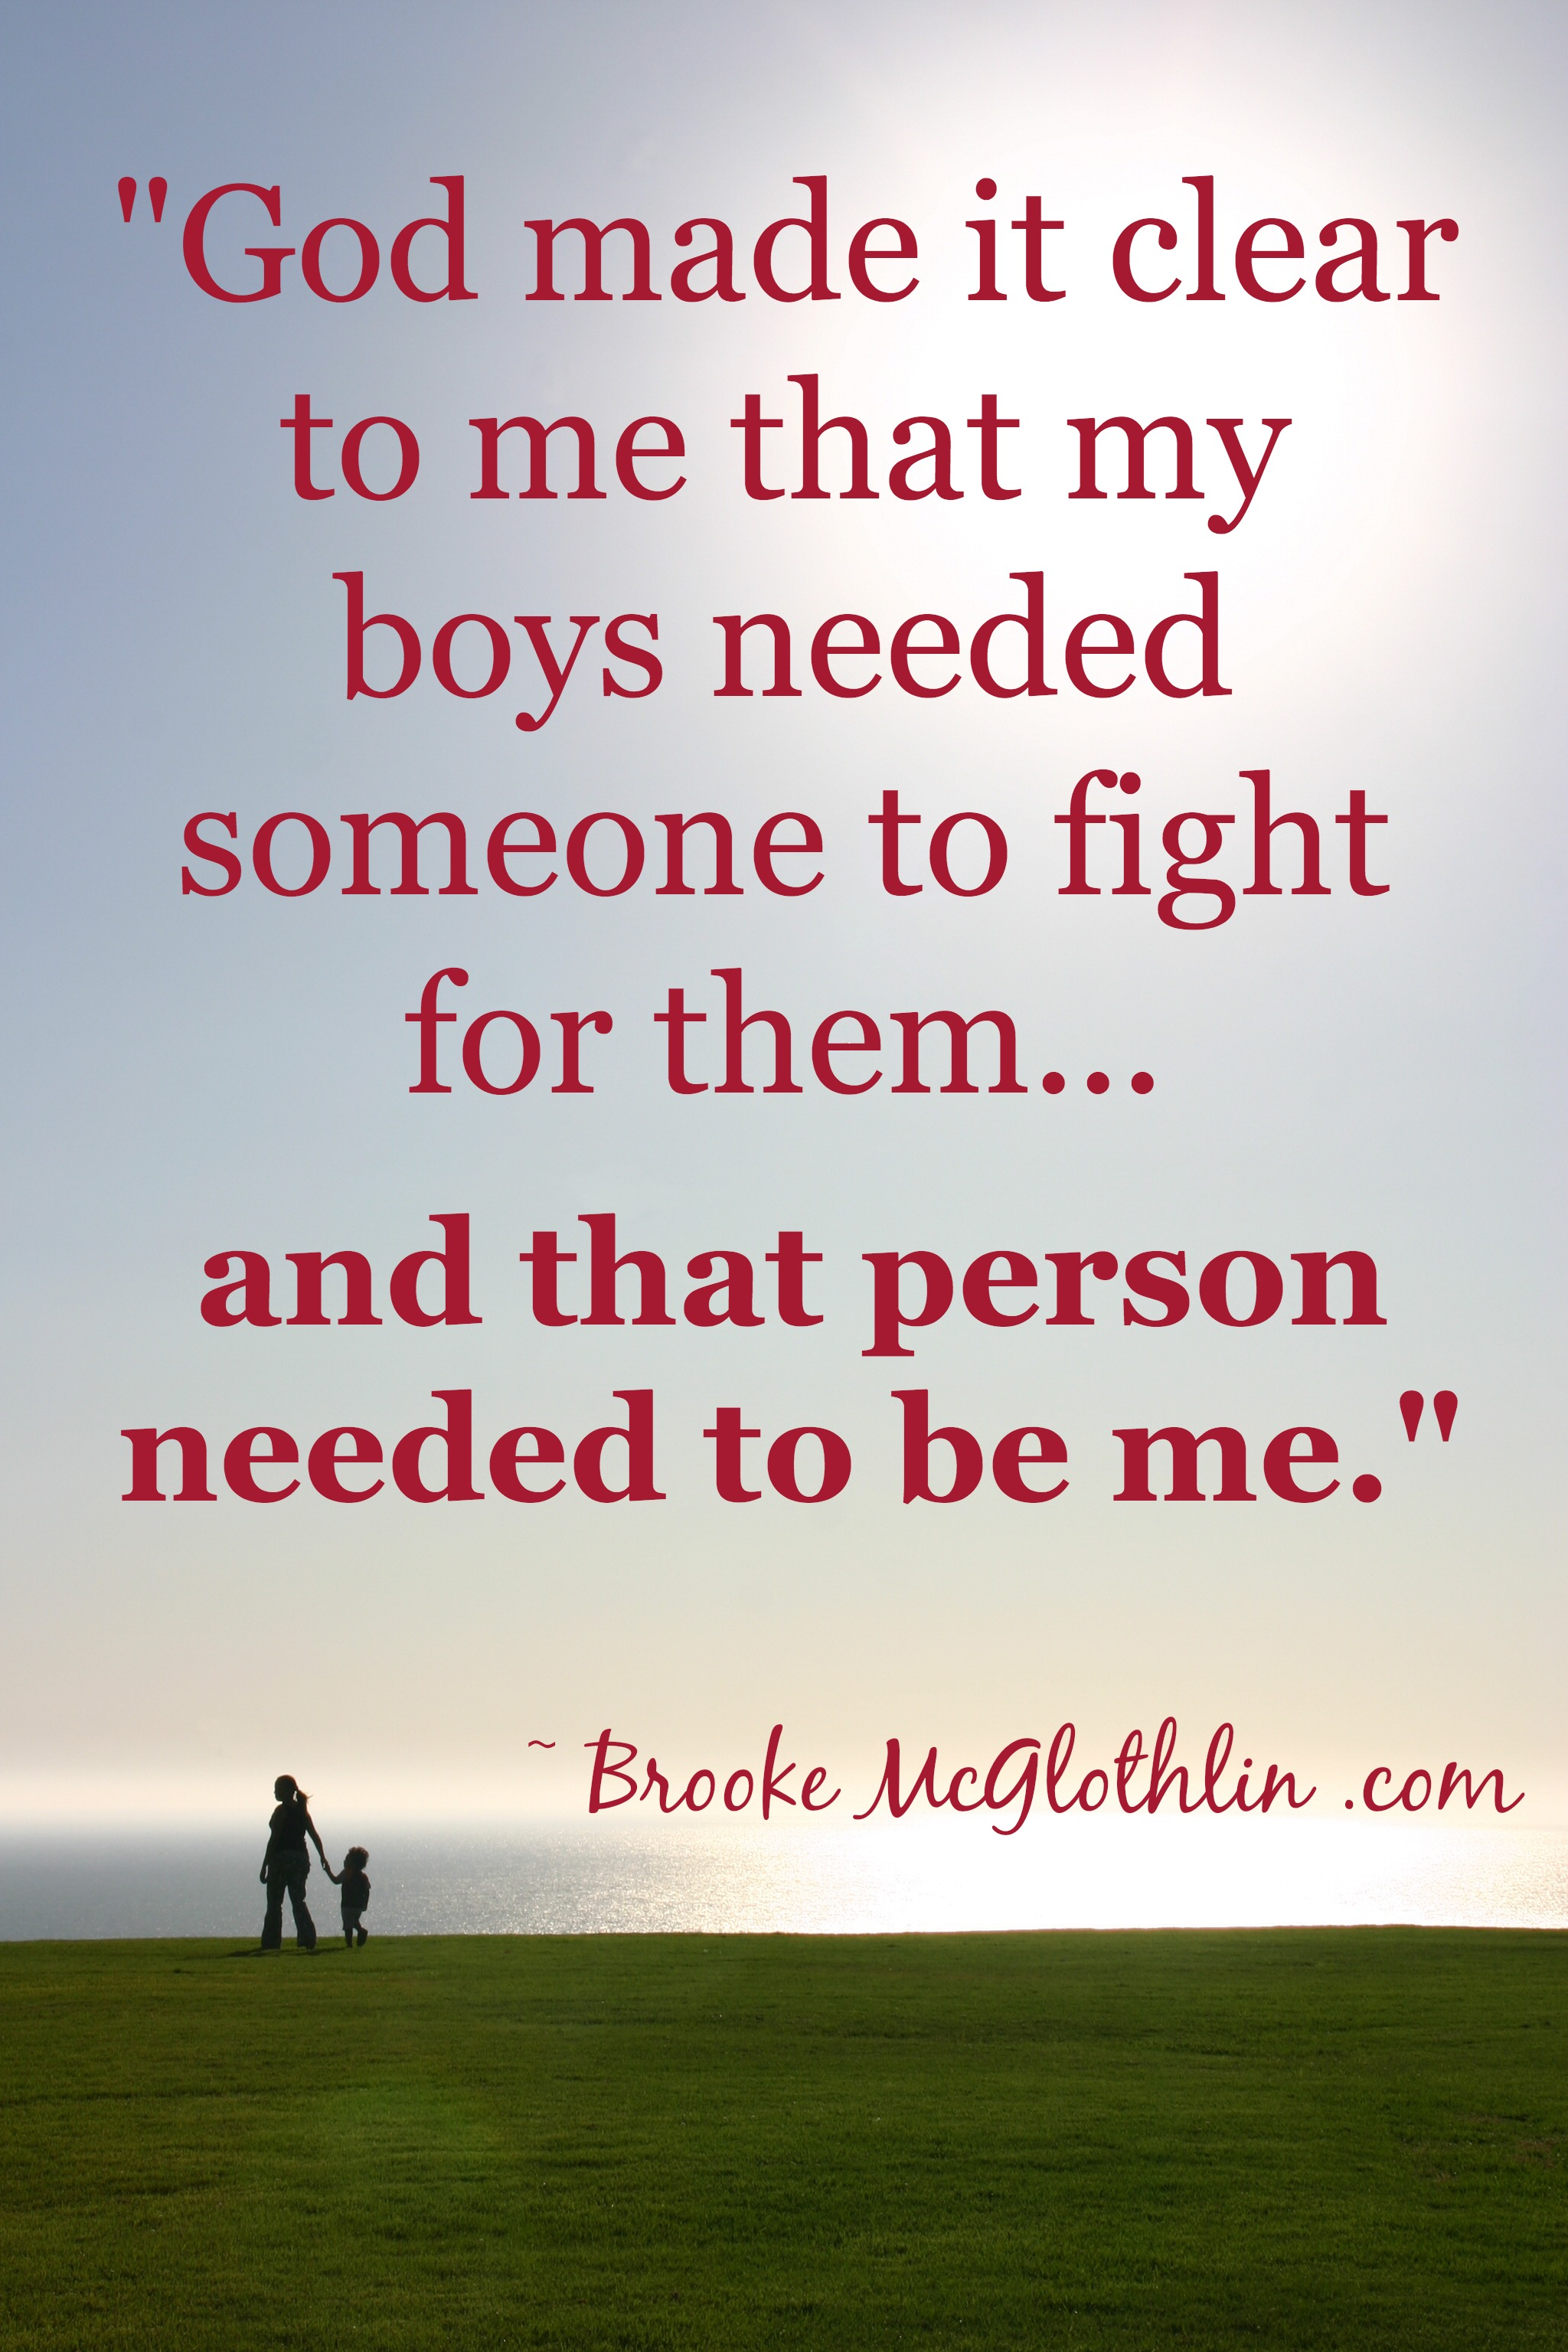 God made it clear to me that my boys needed someone to fight for them, and that that person needed to be me.